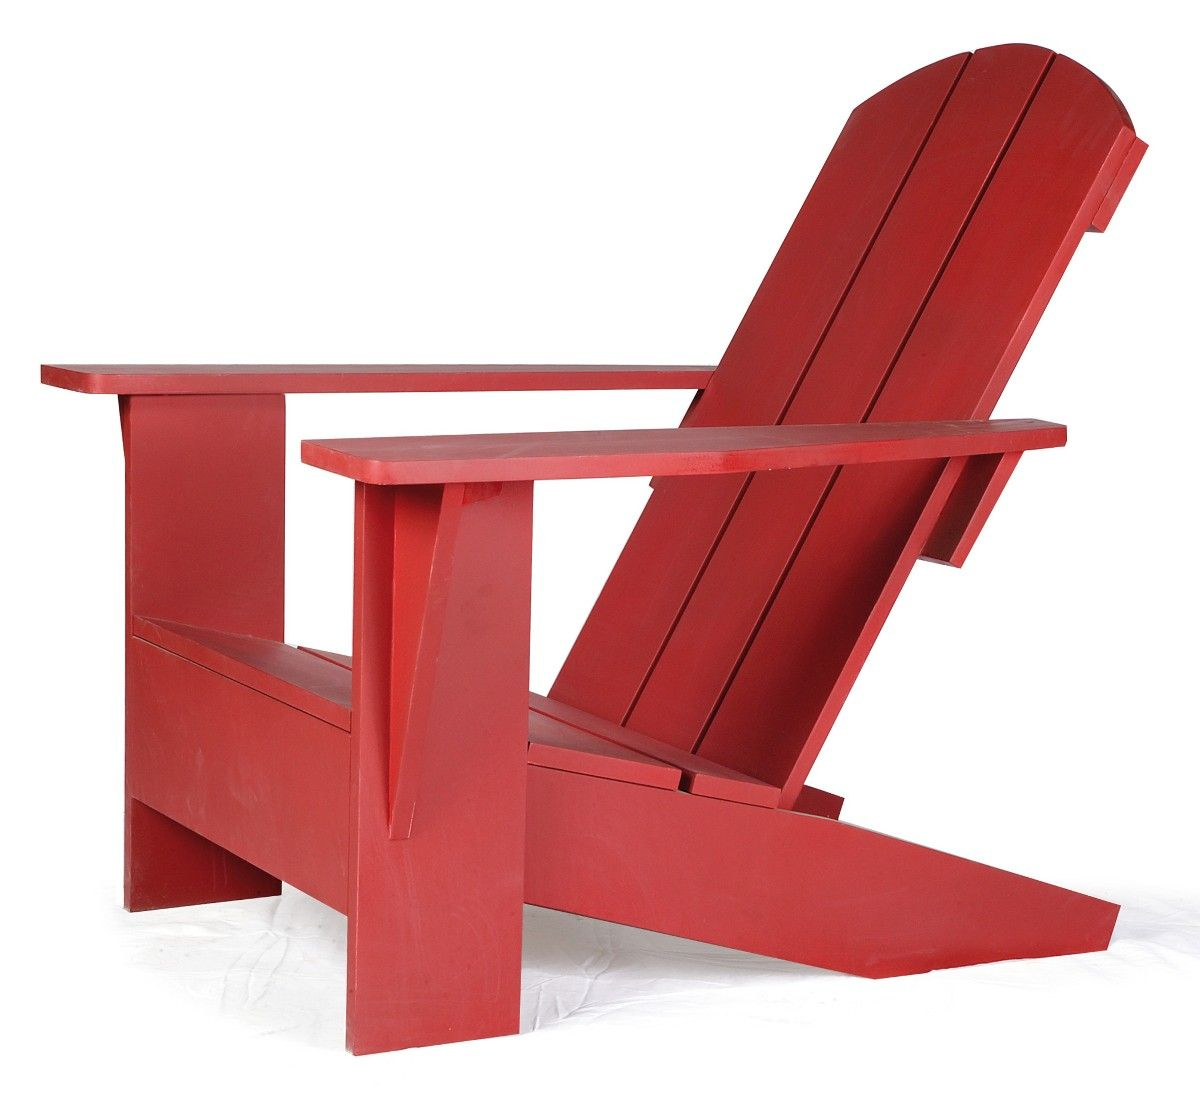 Fauteuil Adirondack Shelter Plus Wood Working Outdoor